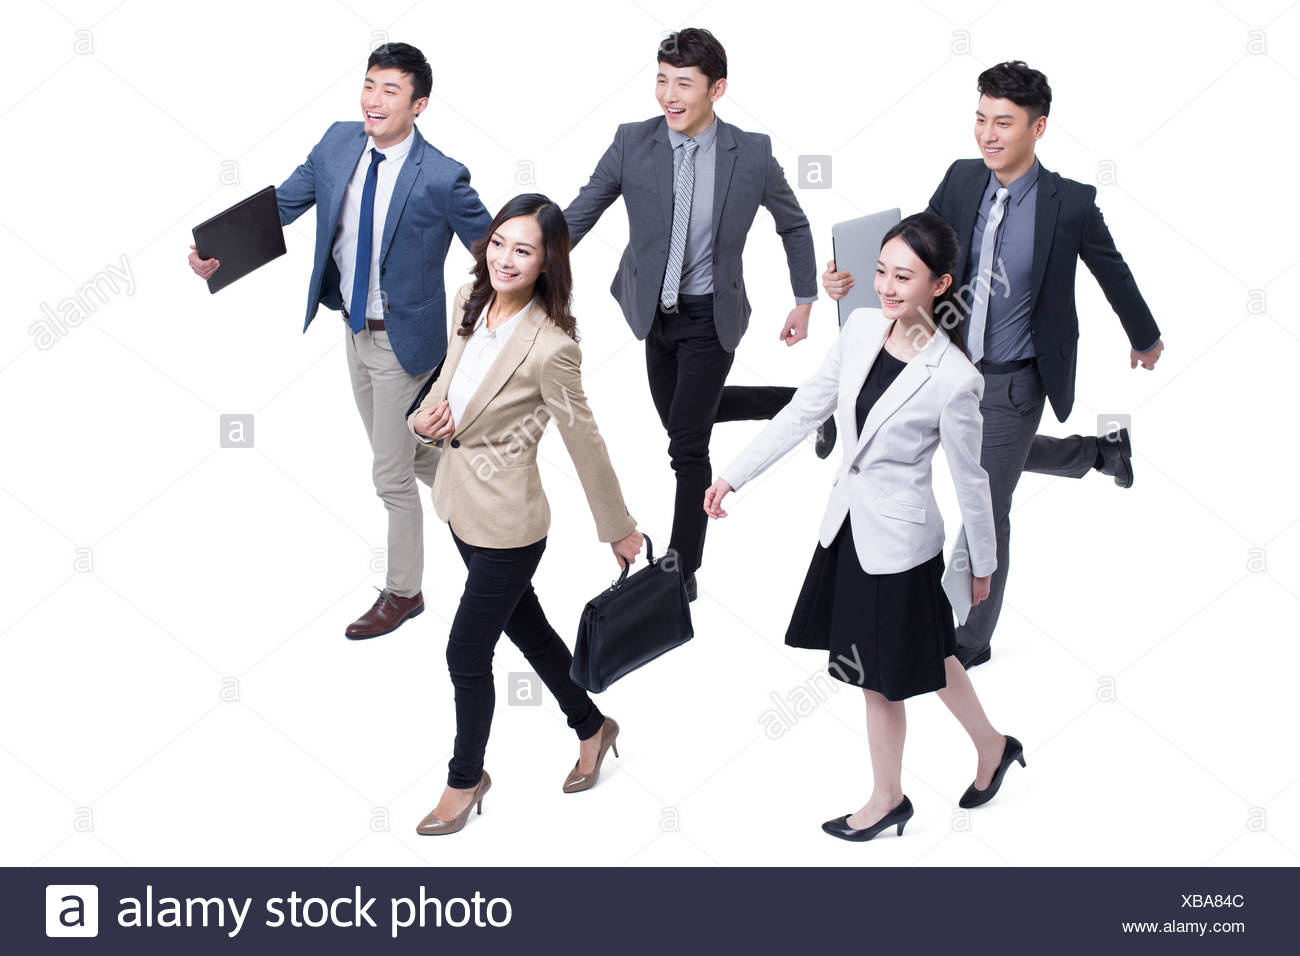 Business people walking forward confidently - Stock Image